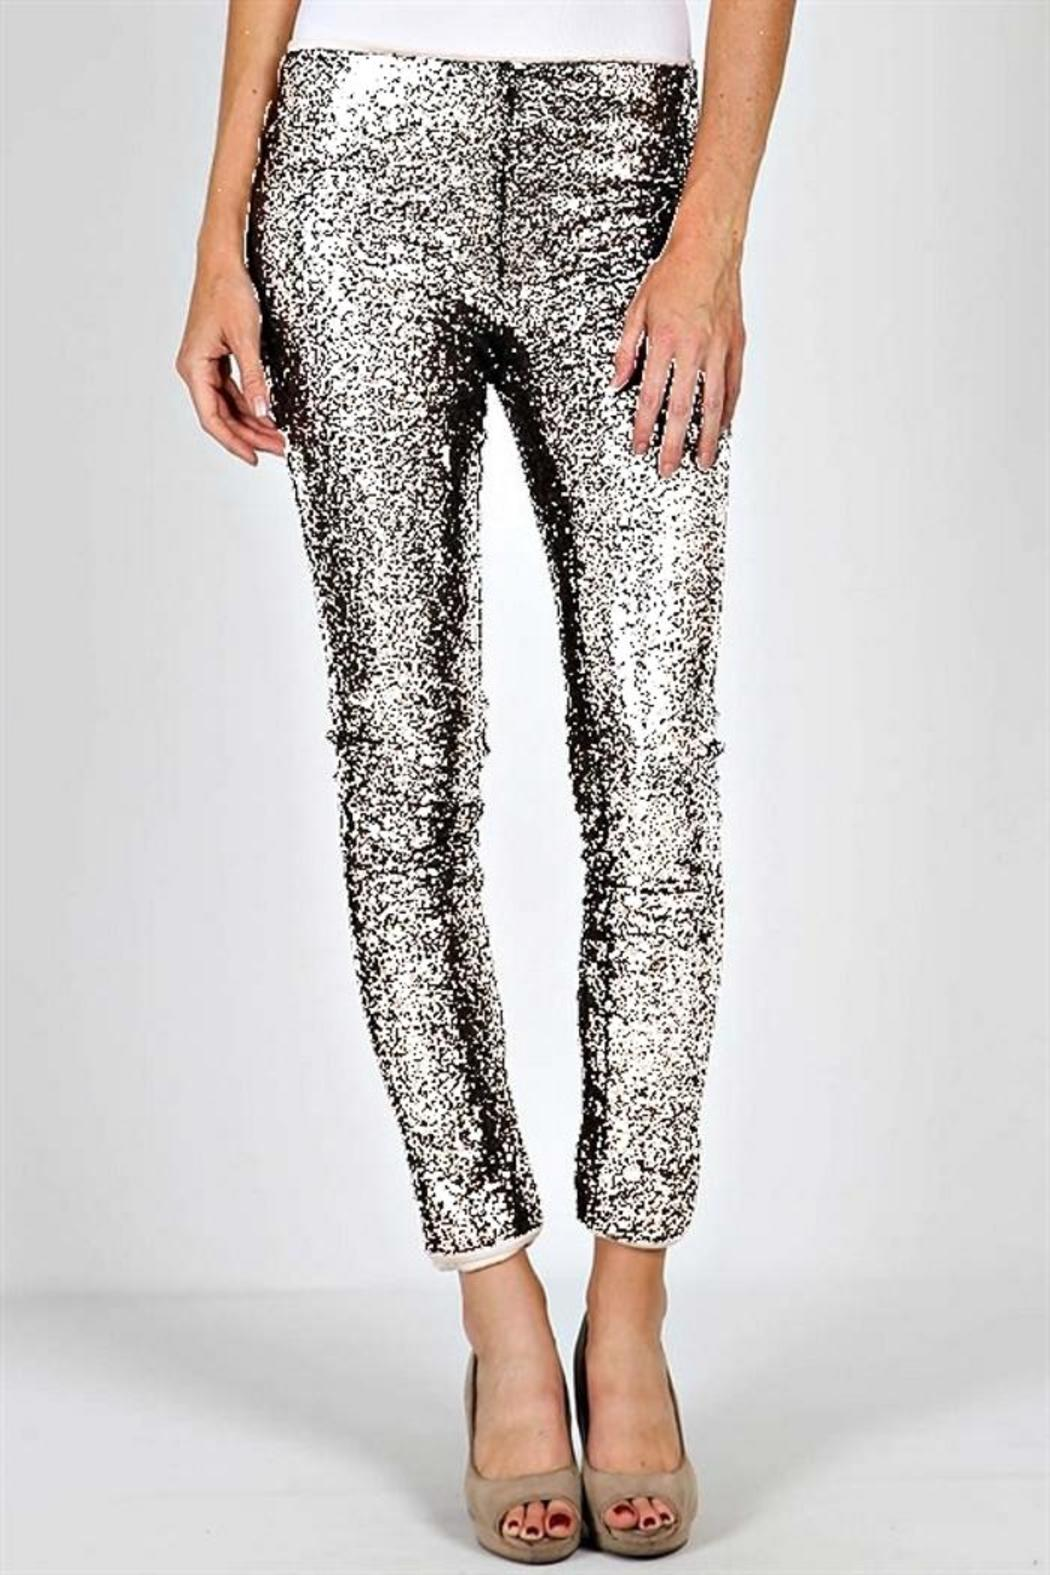 may & july Full Sequin Leggings from Utah by i.Couture ...